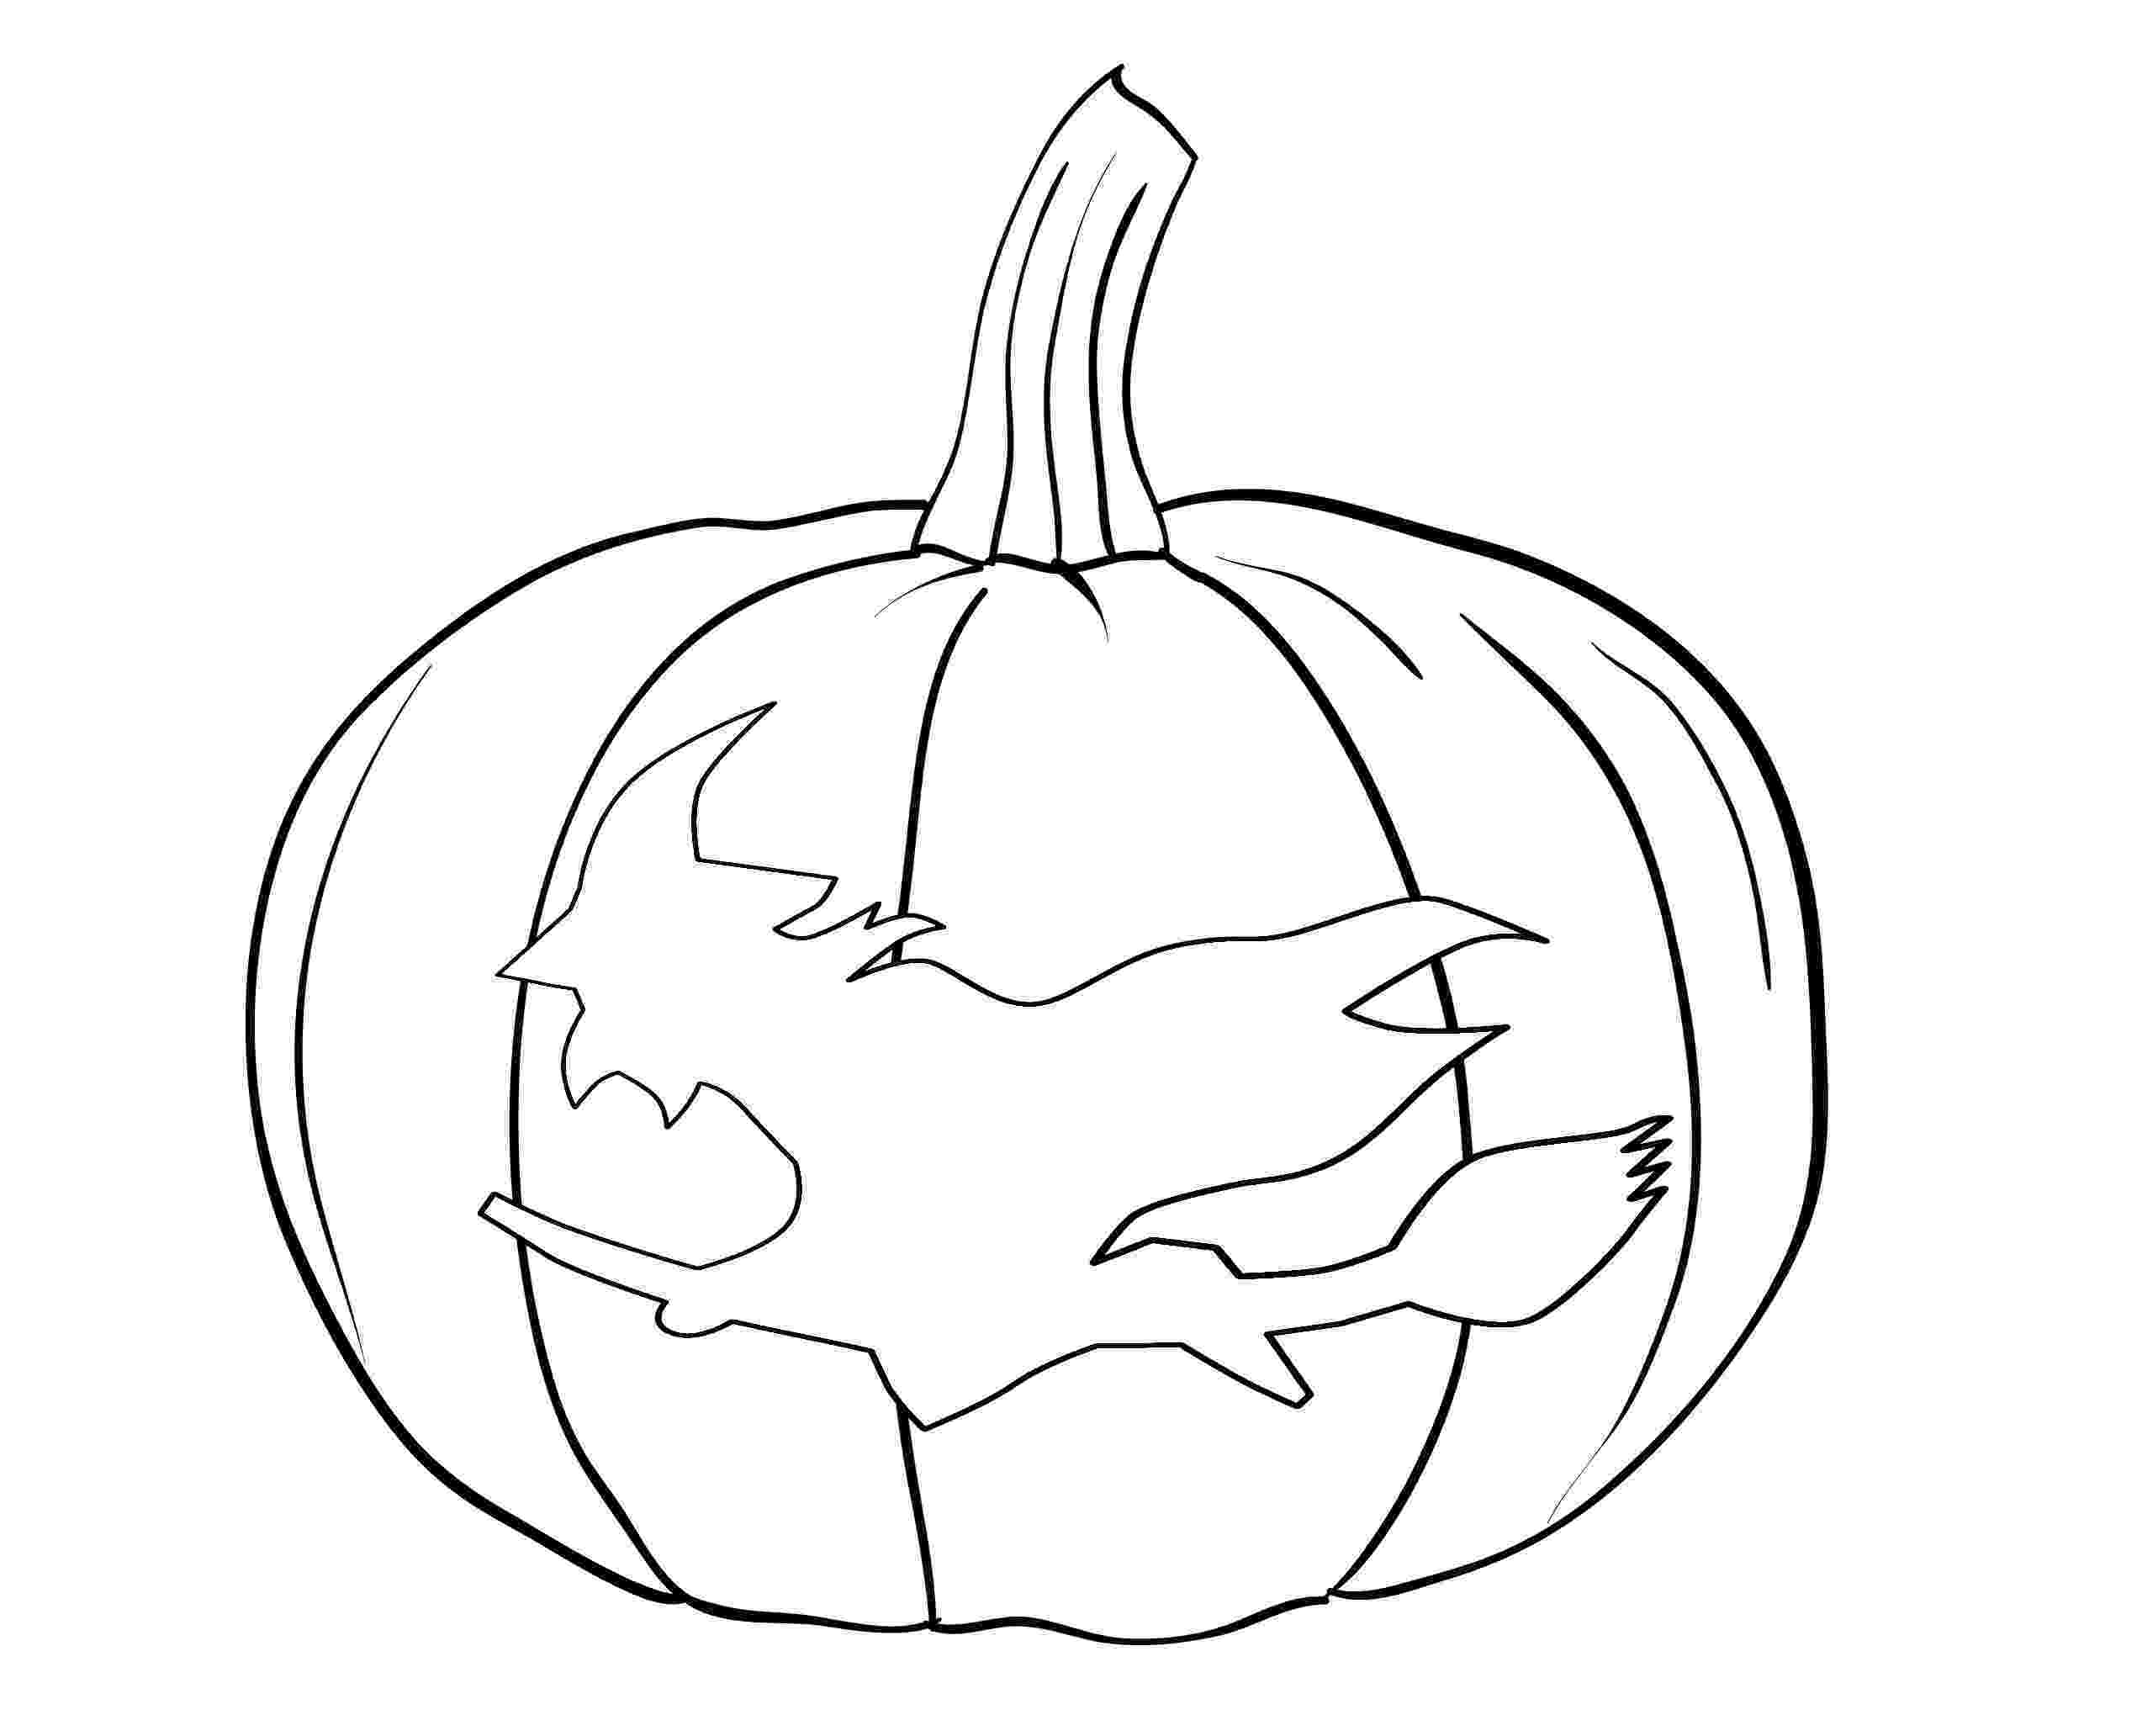 pumkin coloring pages free printable pumpkin coloring pages for kids pages coloring pumkin